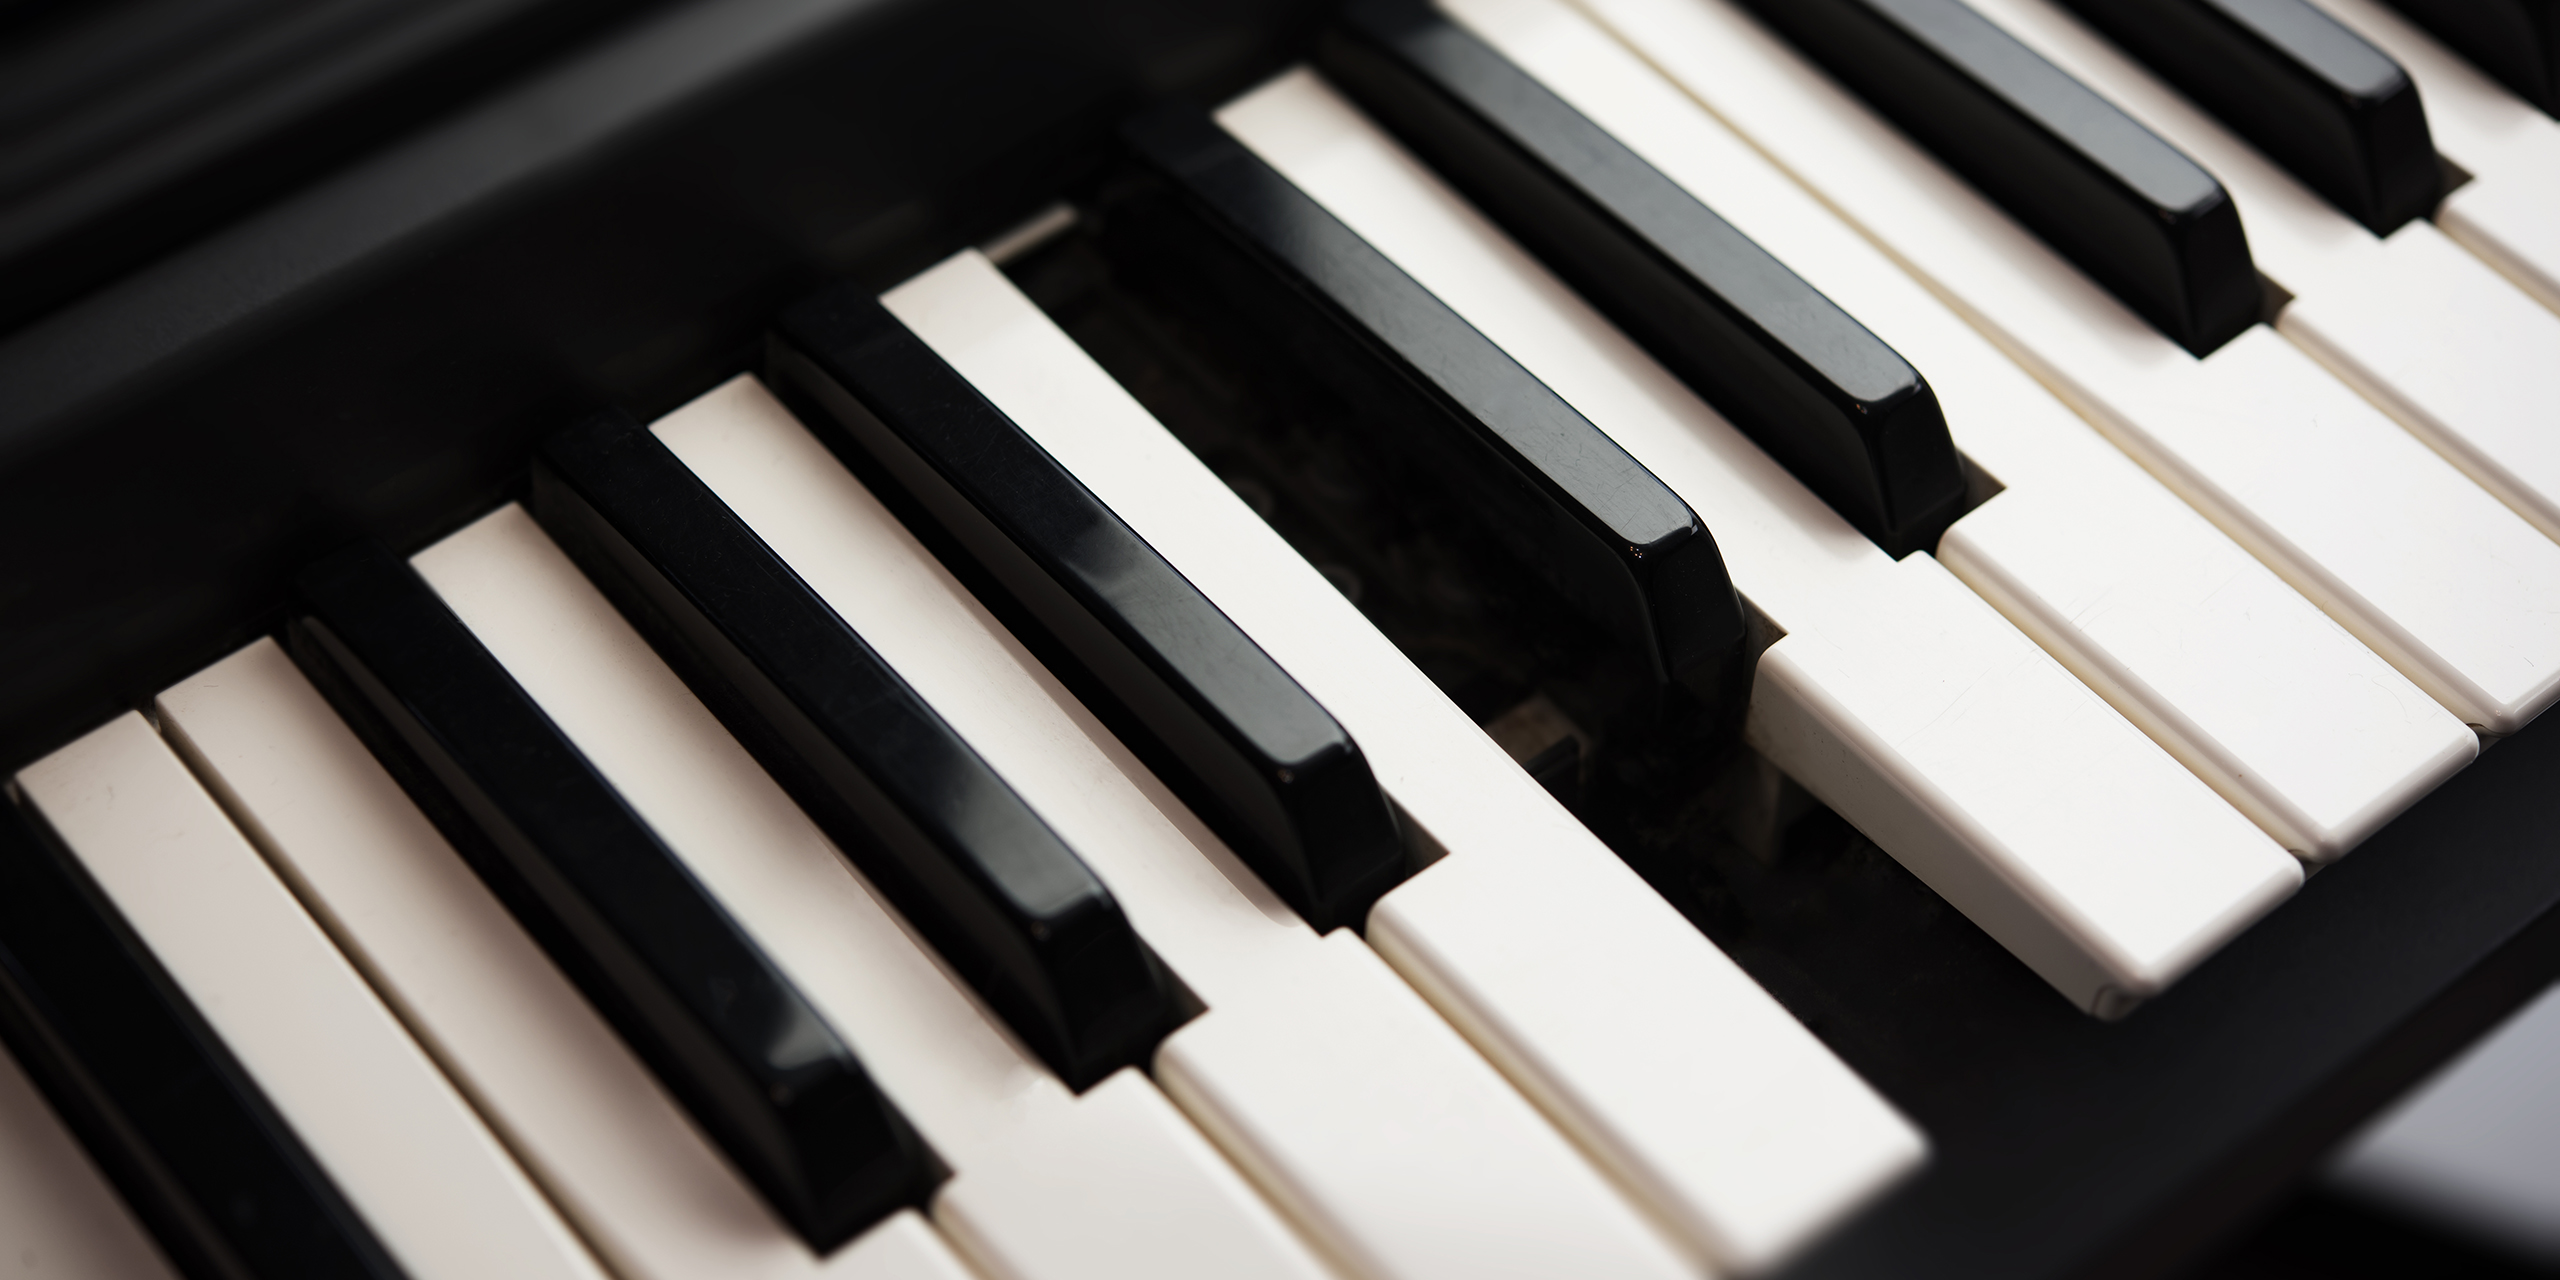 A piano missing a C key